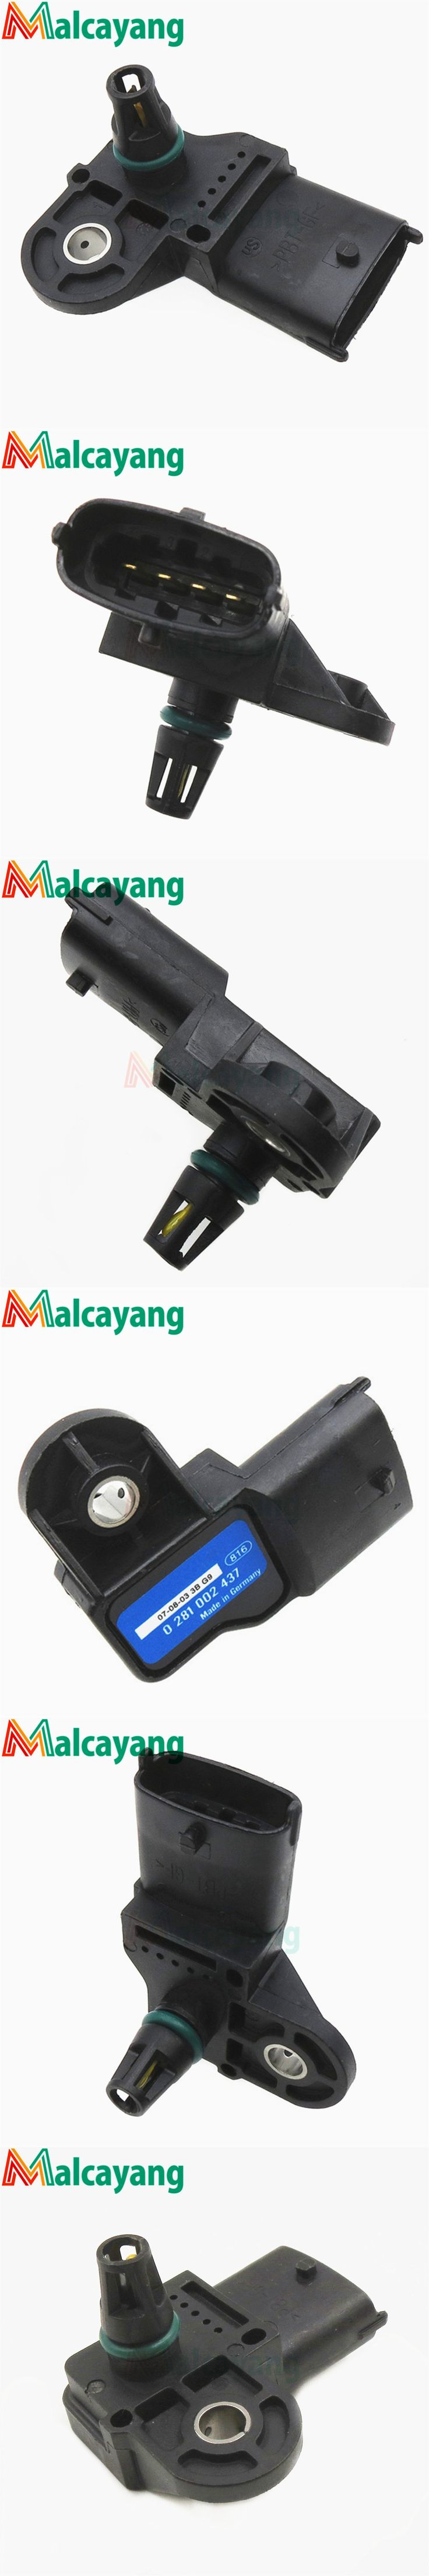 Newest 3 Bar Original Map Sensor For Fiat Multipla Sedici Stilo Croma Doblo Ducato Idea Punto 1.3 1.9 2.4 D 504088431 55206797